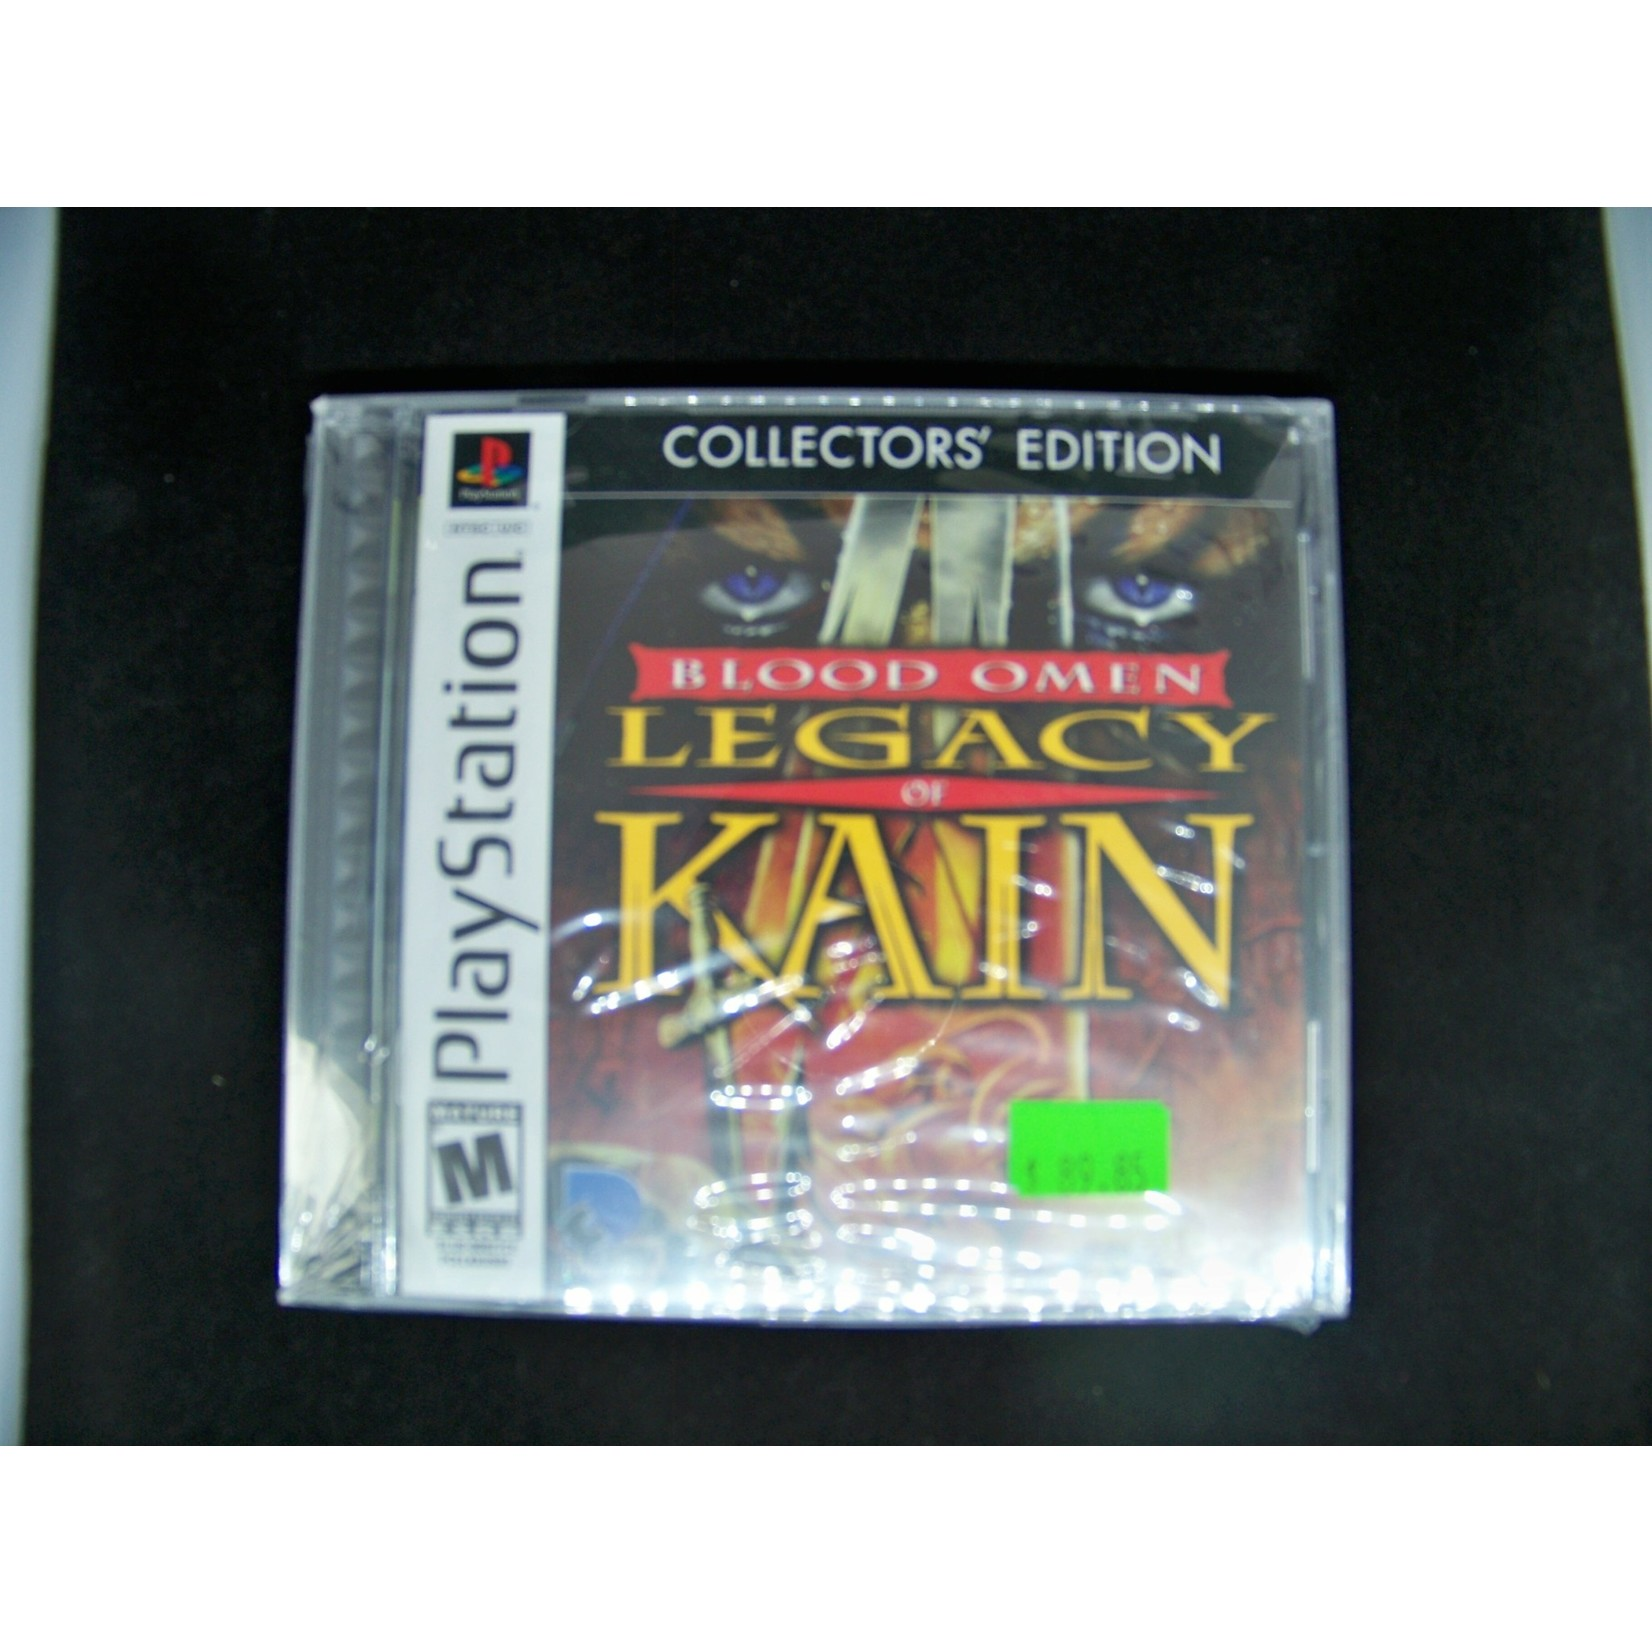 PS1-Blood Omen Legacy of Kain Collector's Edition